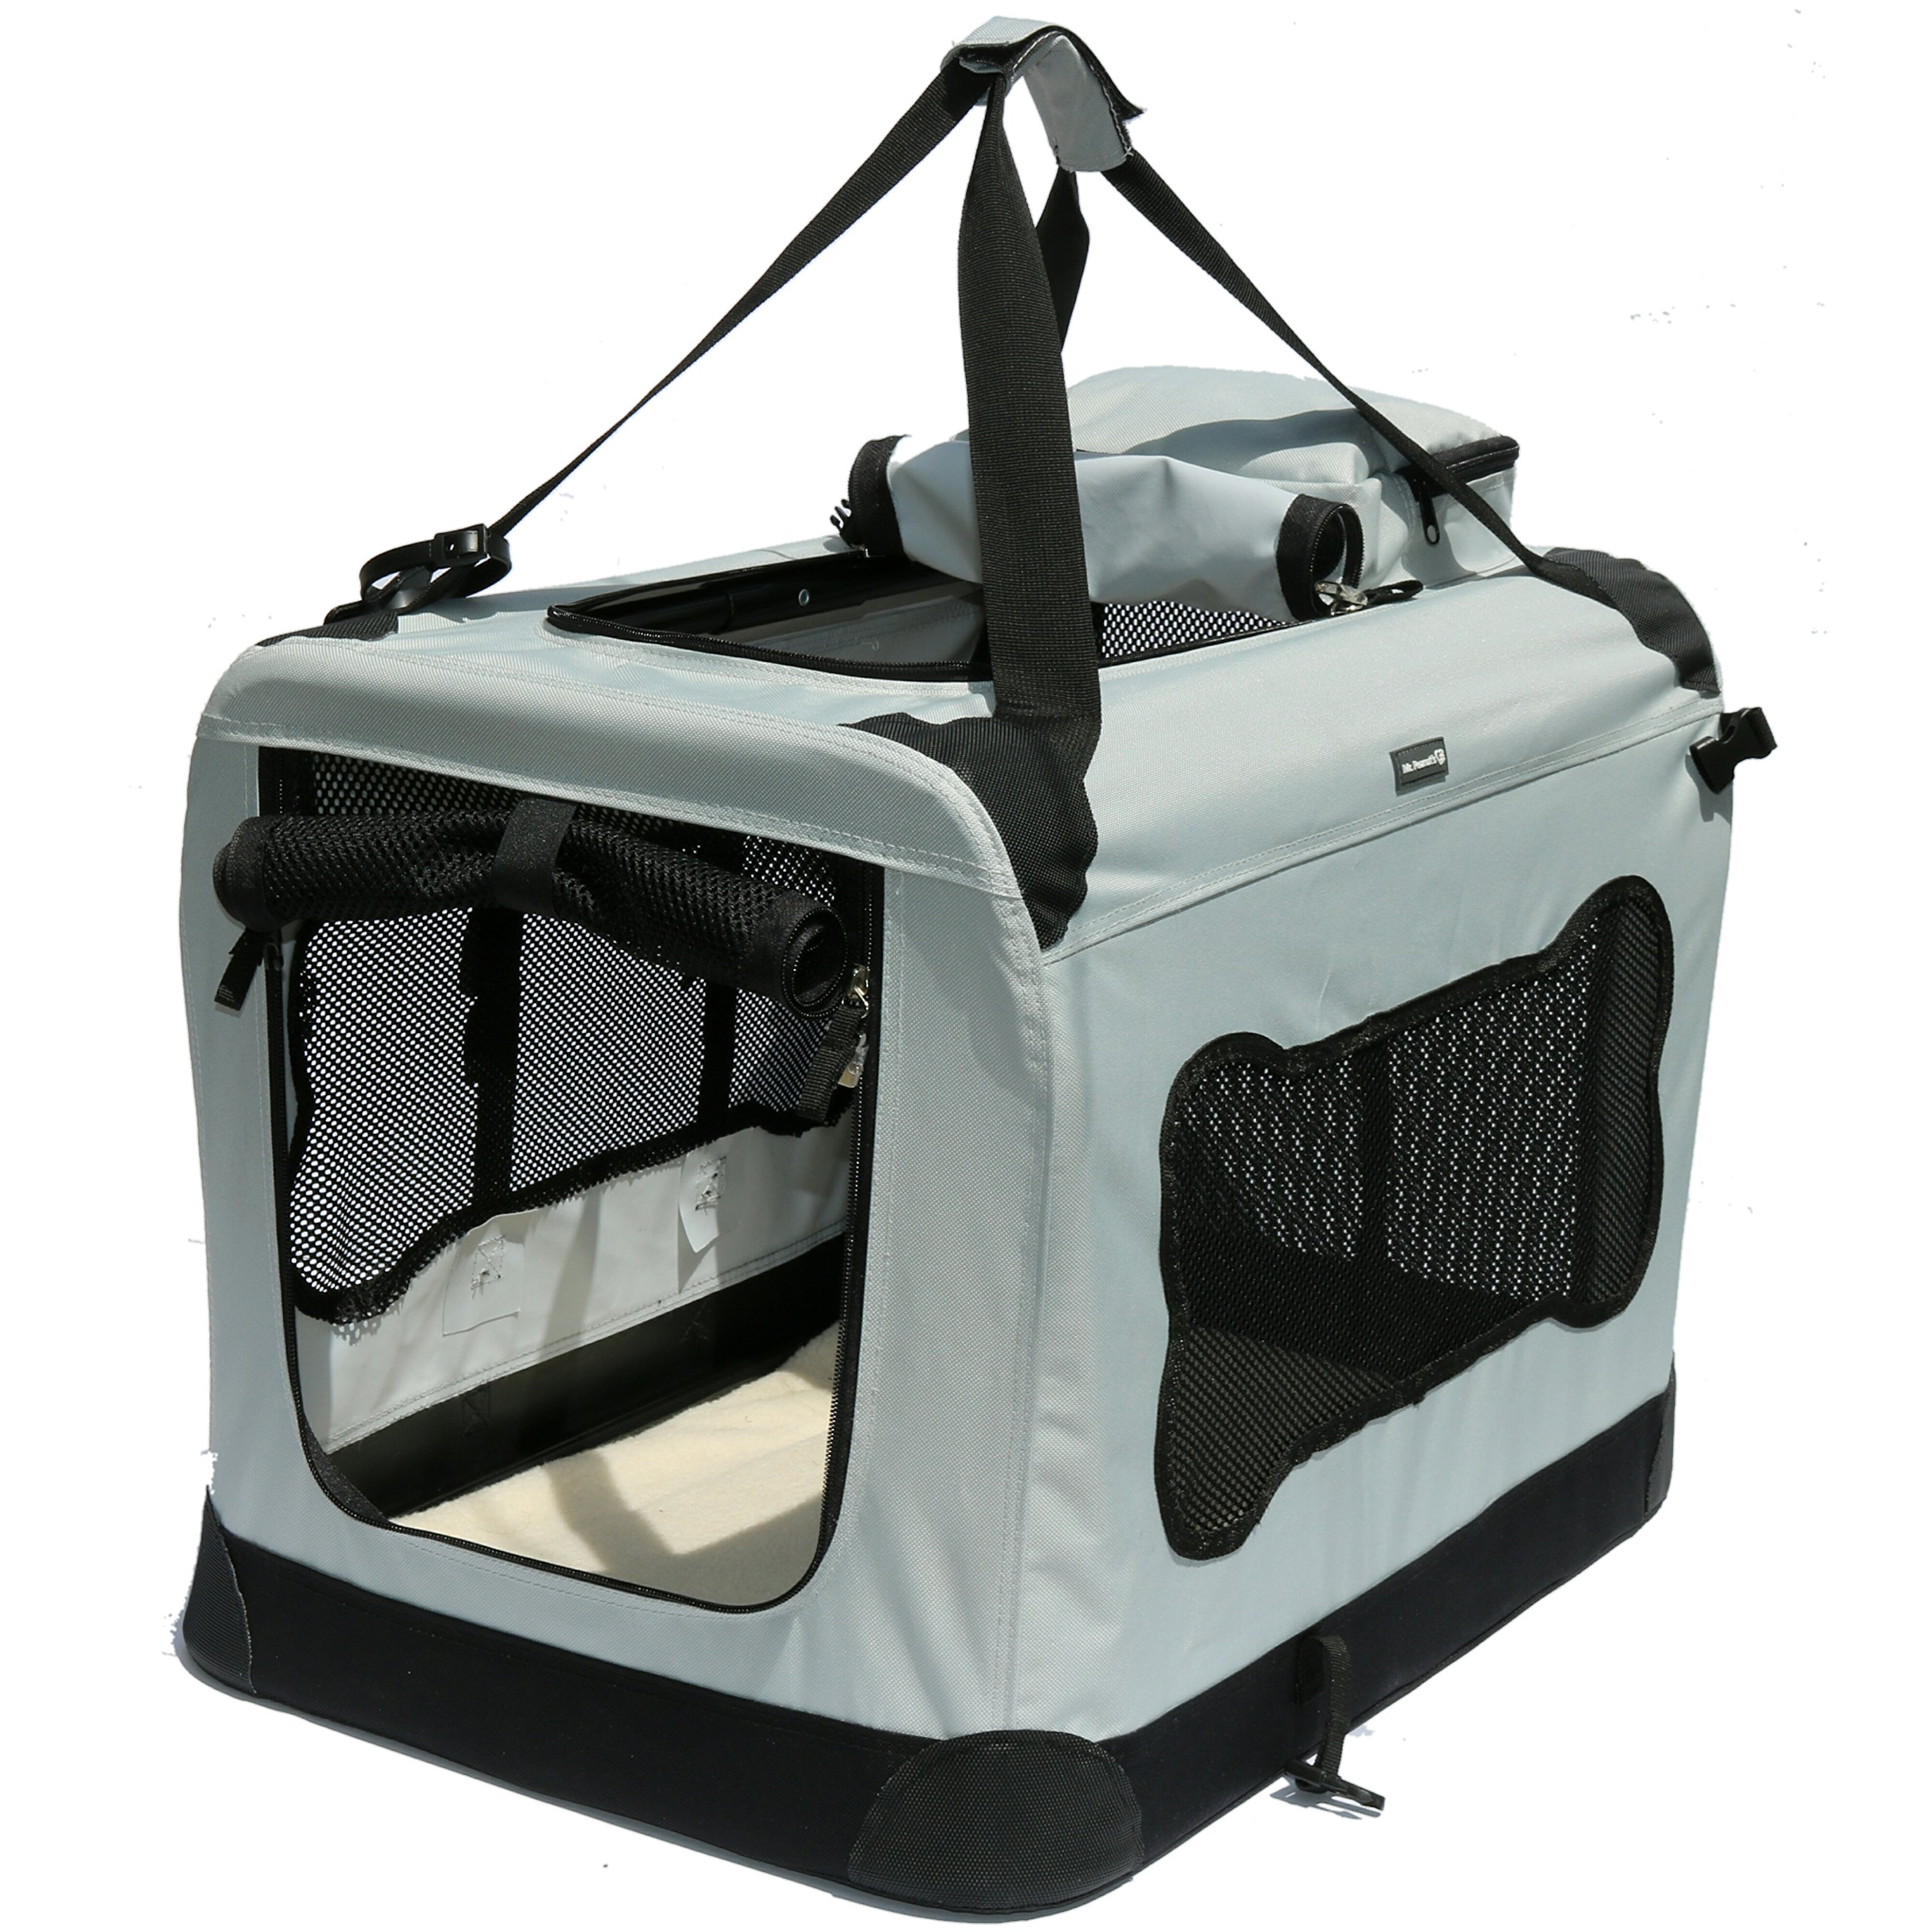 Soft Sided Pet Carrier with Steel Frame - Dog House Style Portable Pet Crate - Cats & Dogs - Designed for Comfort & Safety - Padded Fleece Bedding Washable Fabric Cover Locking Zipper (Twilight Gray)